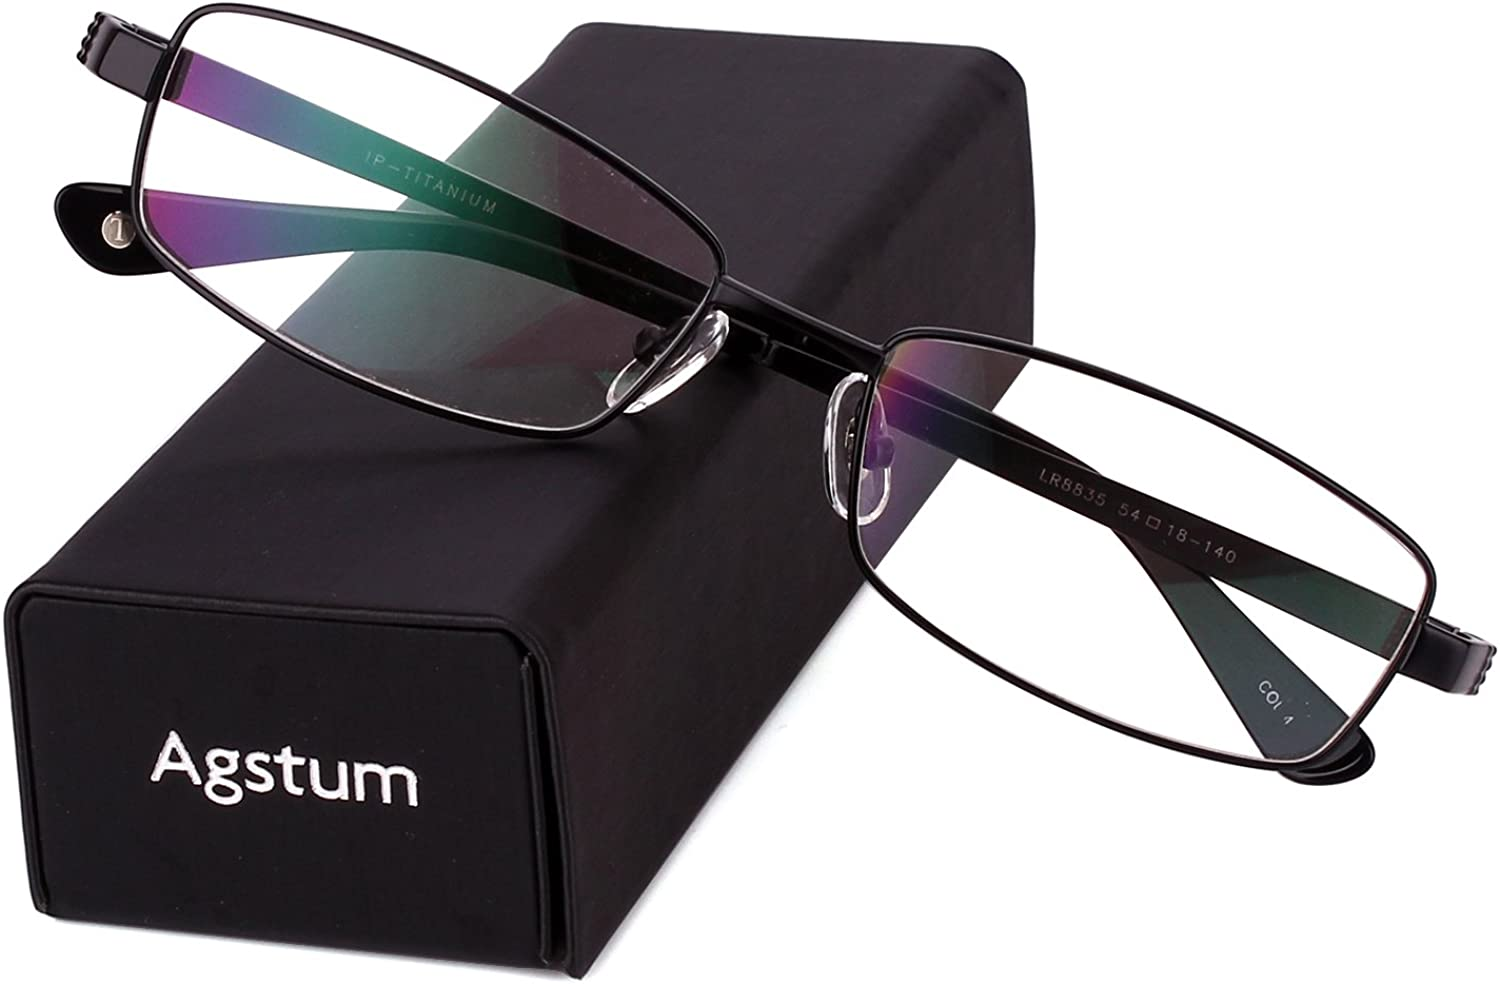 Agstum Pure Titanium Full Rim Glasses Frame Optical Eyeglasses Rxable 54mm